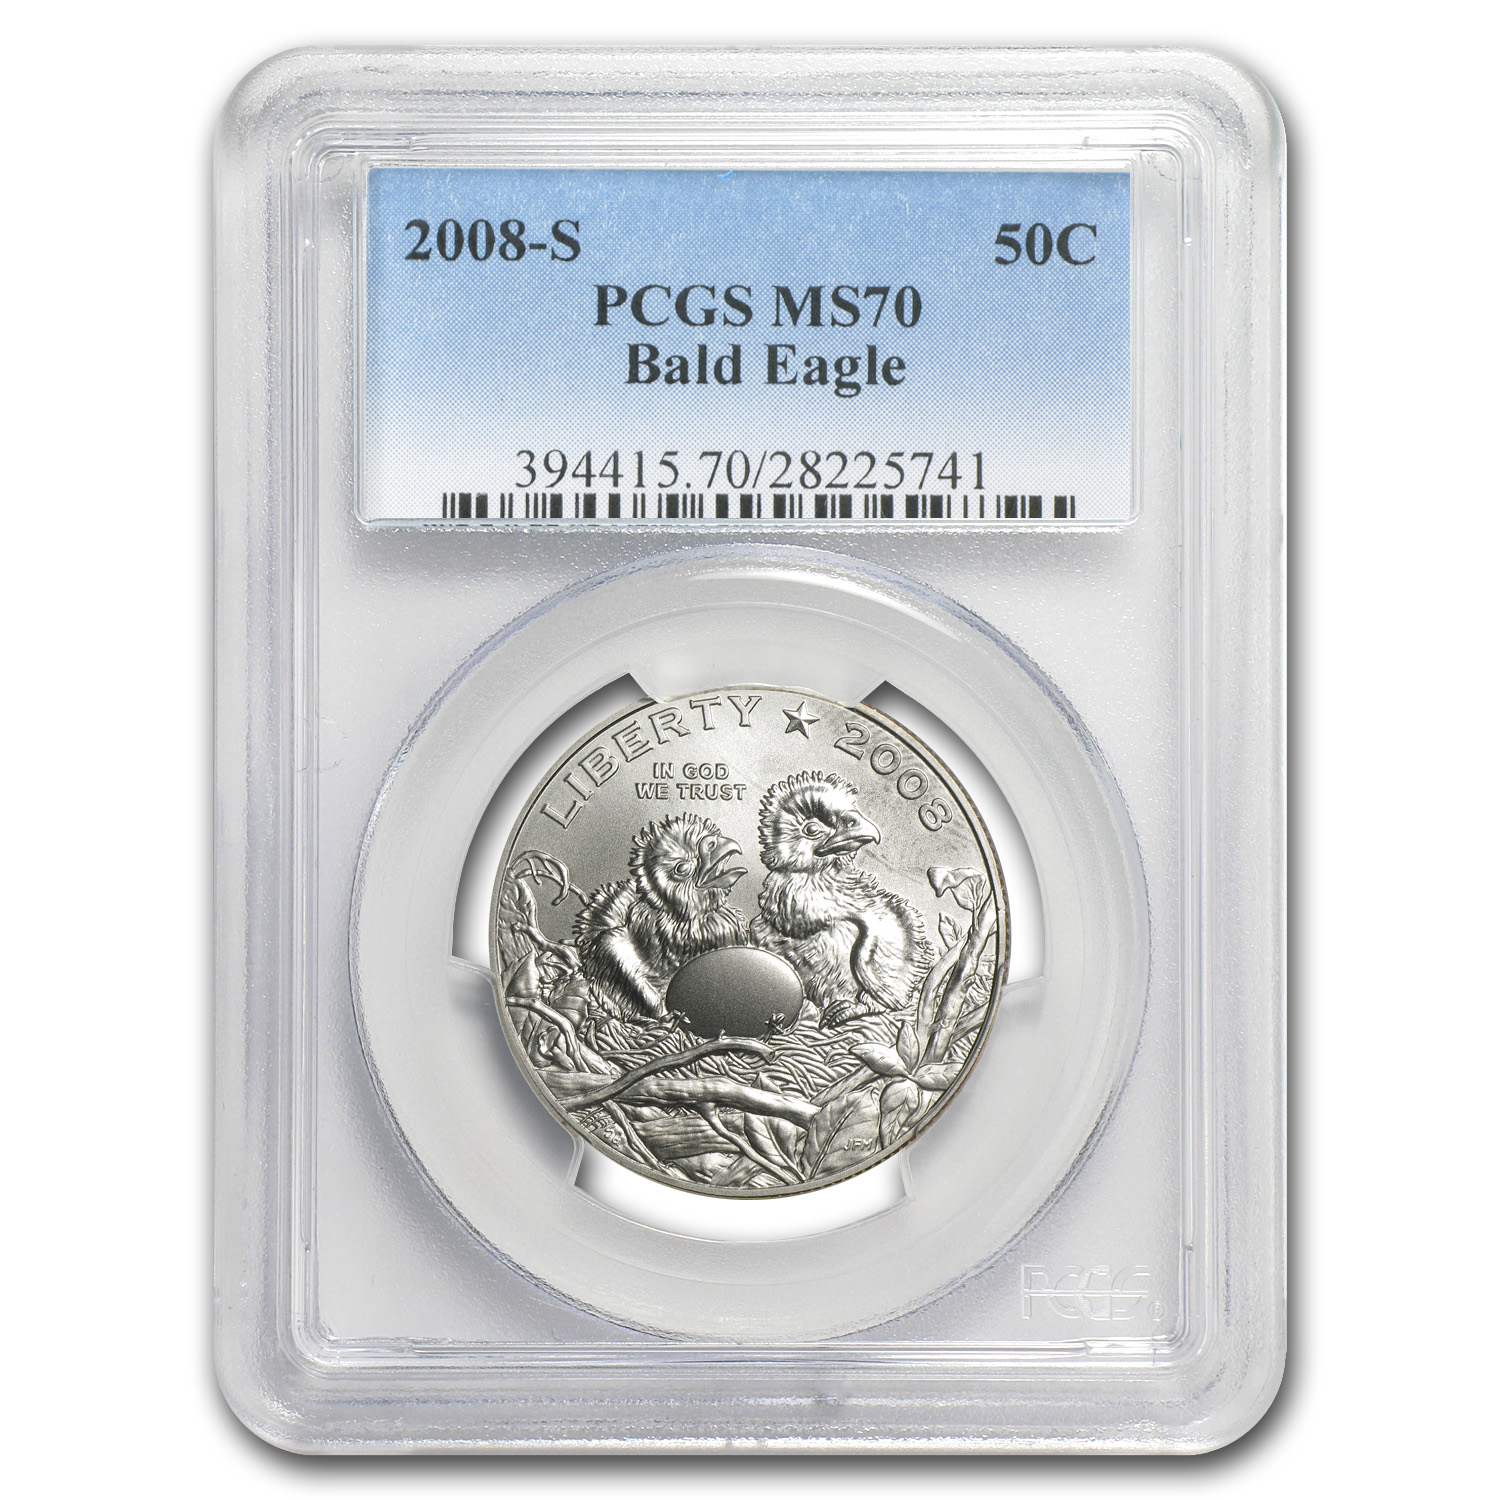 2008-S Bald Eagle Half Dollar Clad Commem MS-70 PCGS